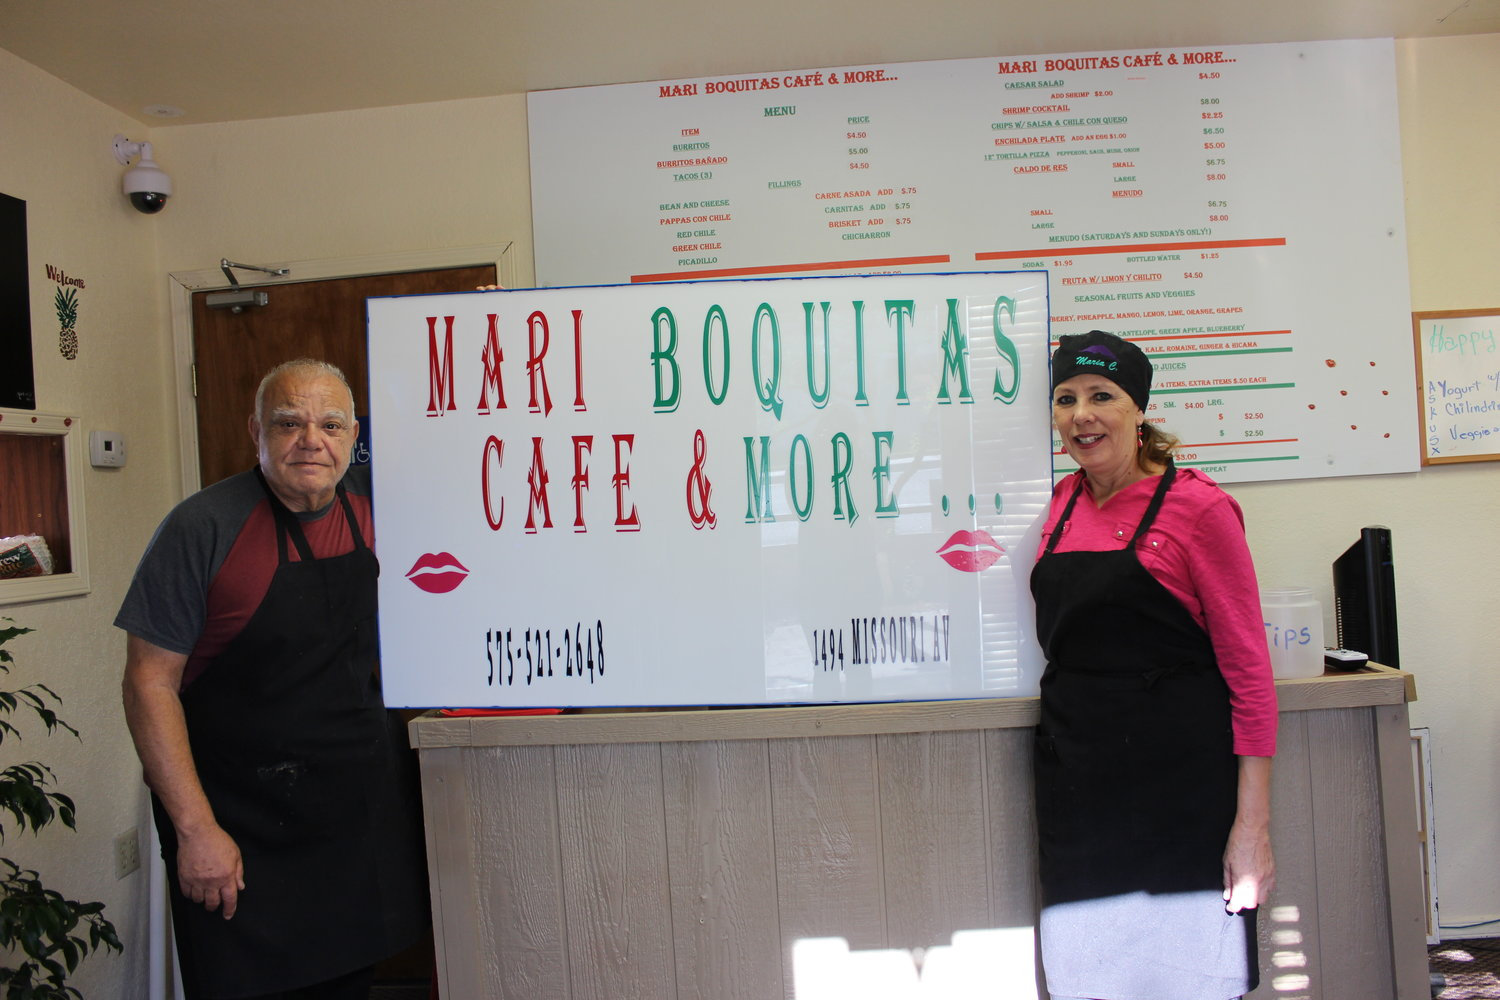 Michael Vento and Maria Chavez Vento stand next to a sign for their new restaurant, Mari Boquitas Café and More, located at 1494 Missouri Ave, in the same building as Baskin Robins.